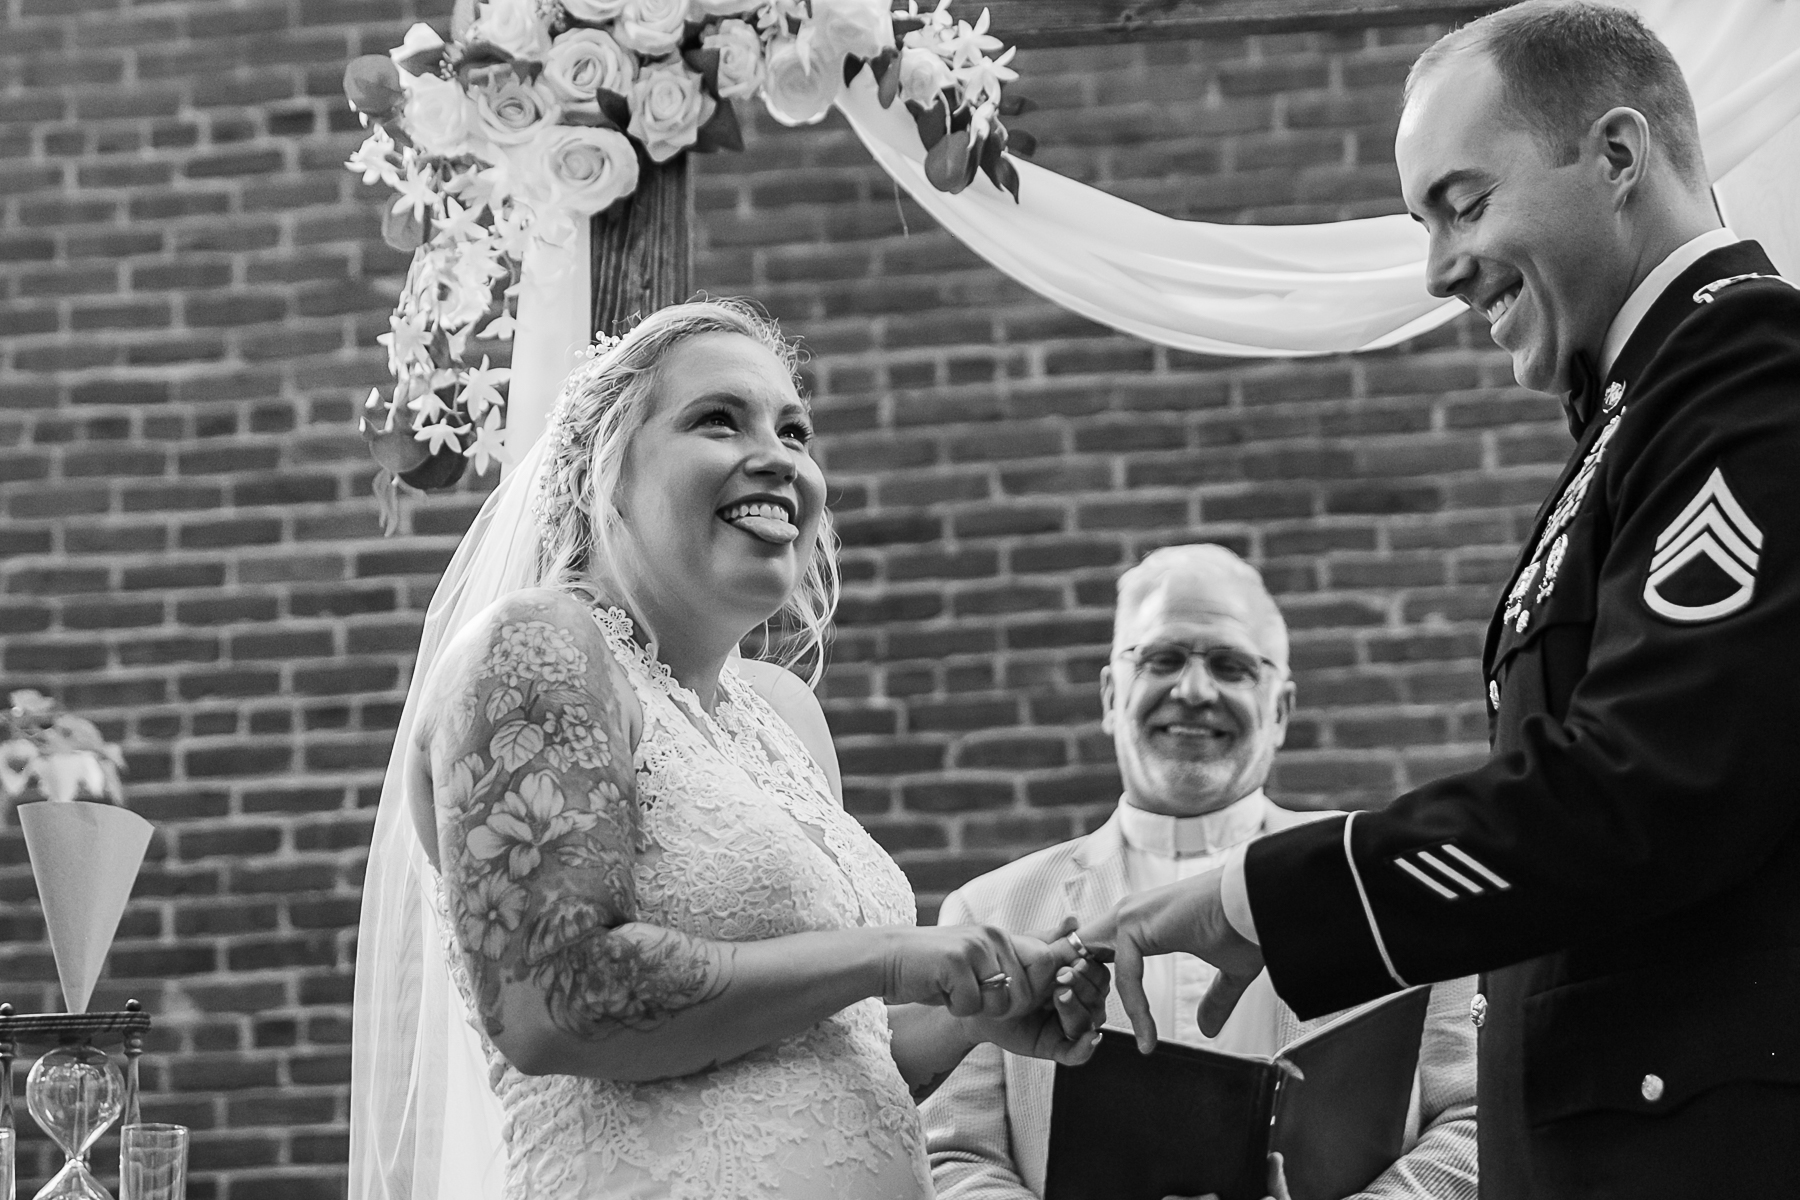 Savannah Wedding Ceremony Photo Gallery | The bride has a little trouble getting the wedding ring on